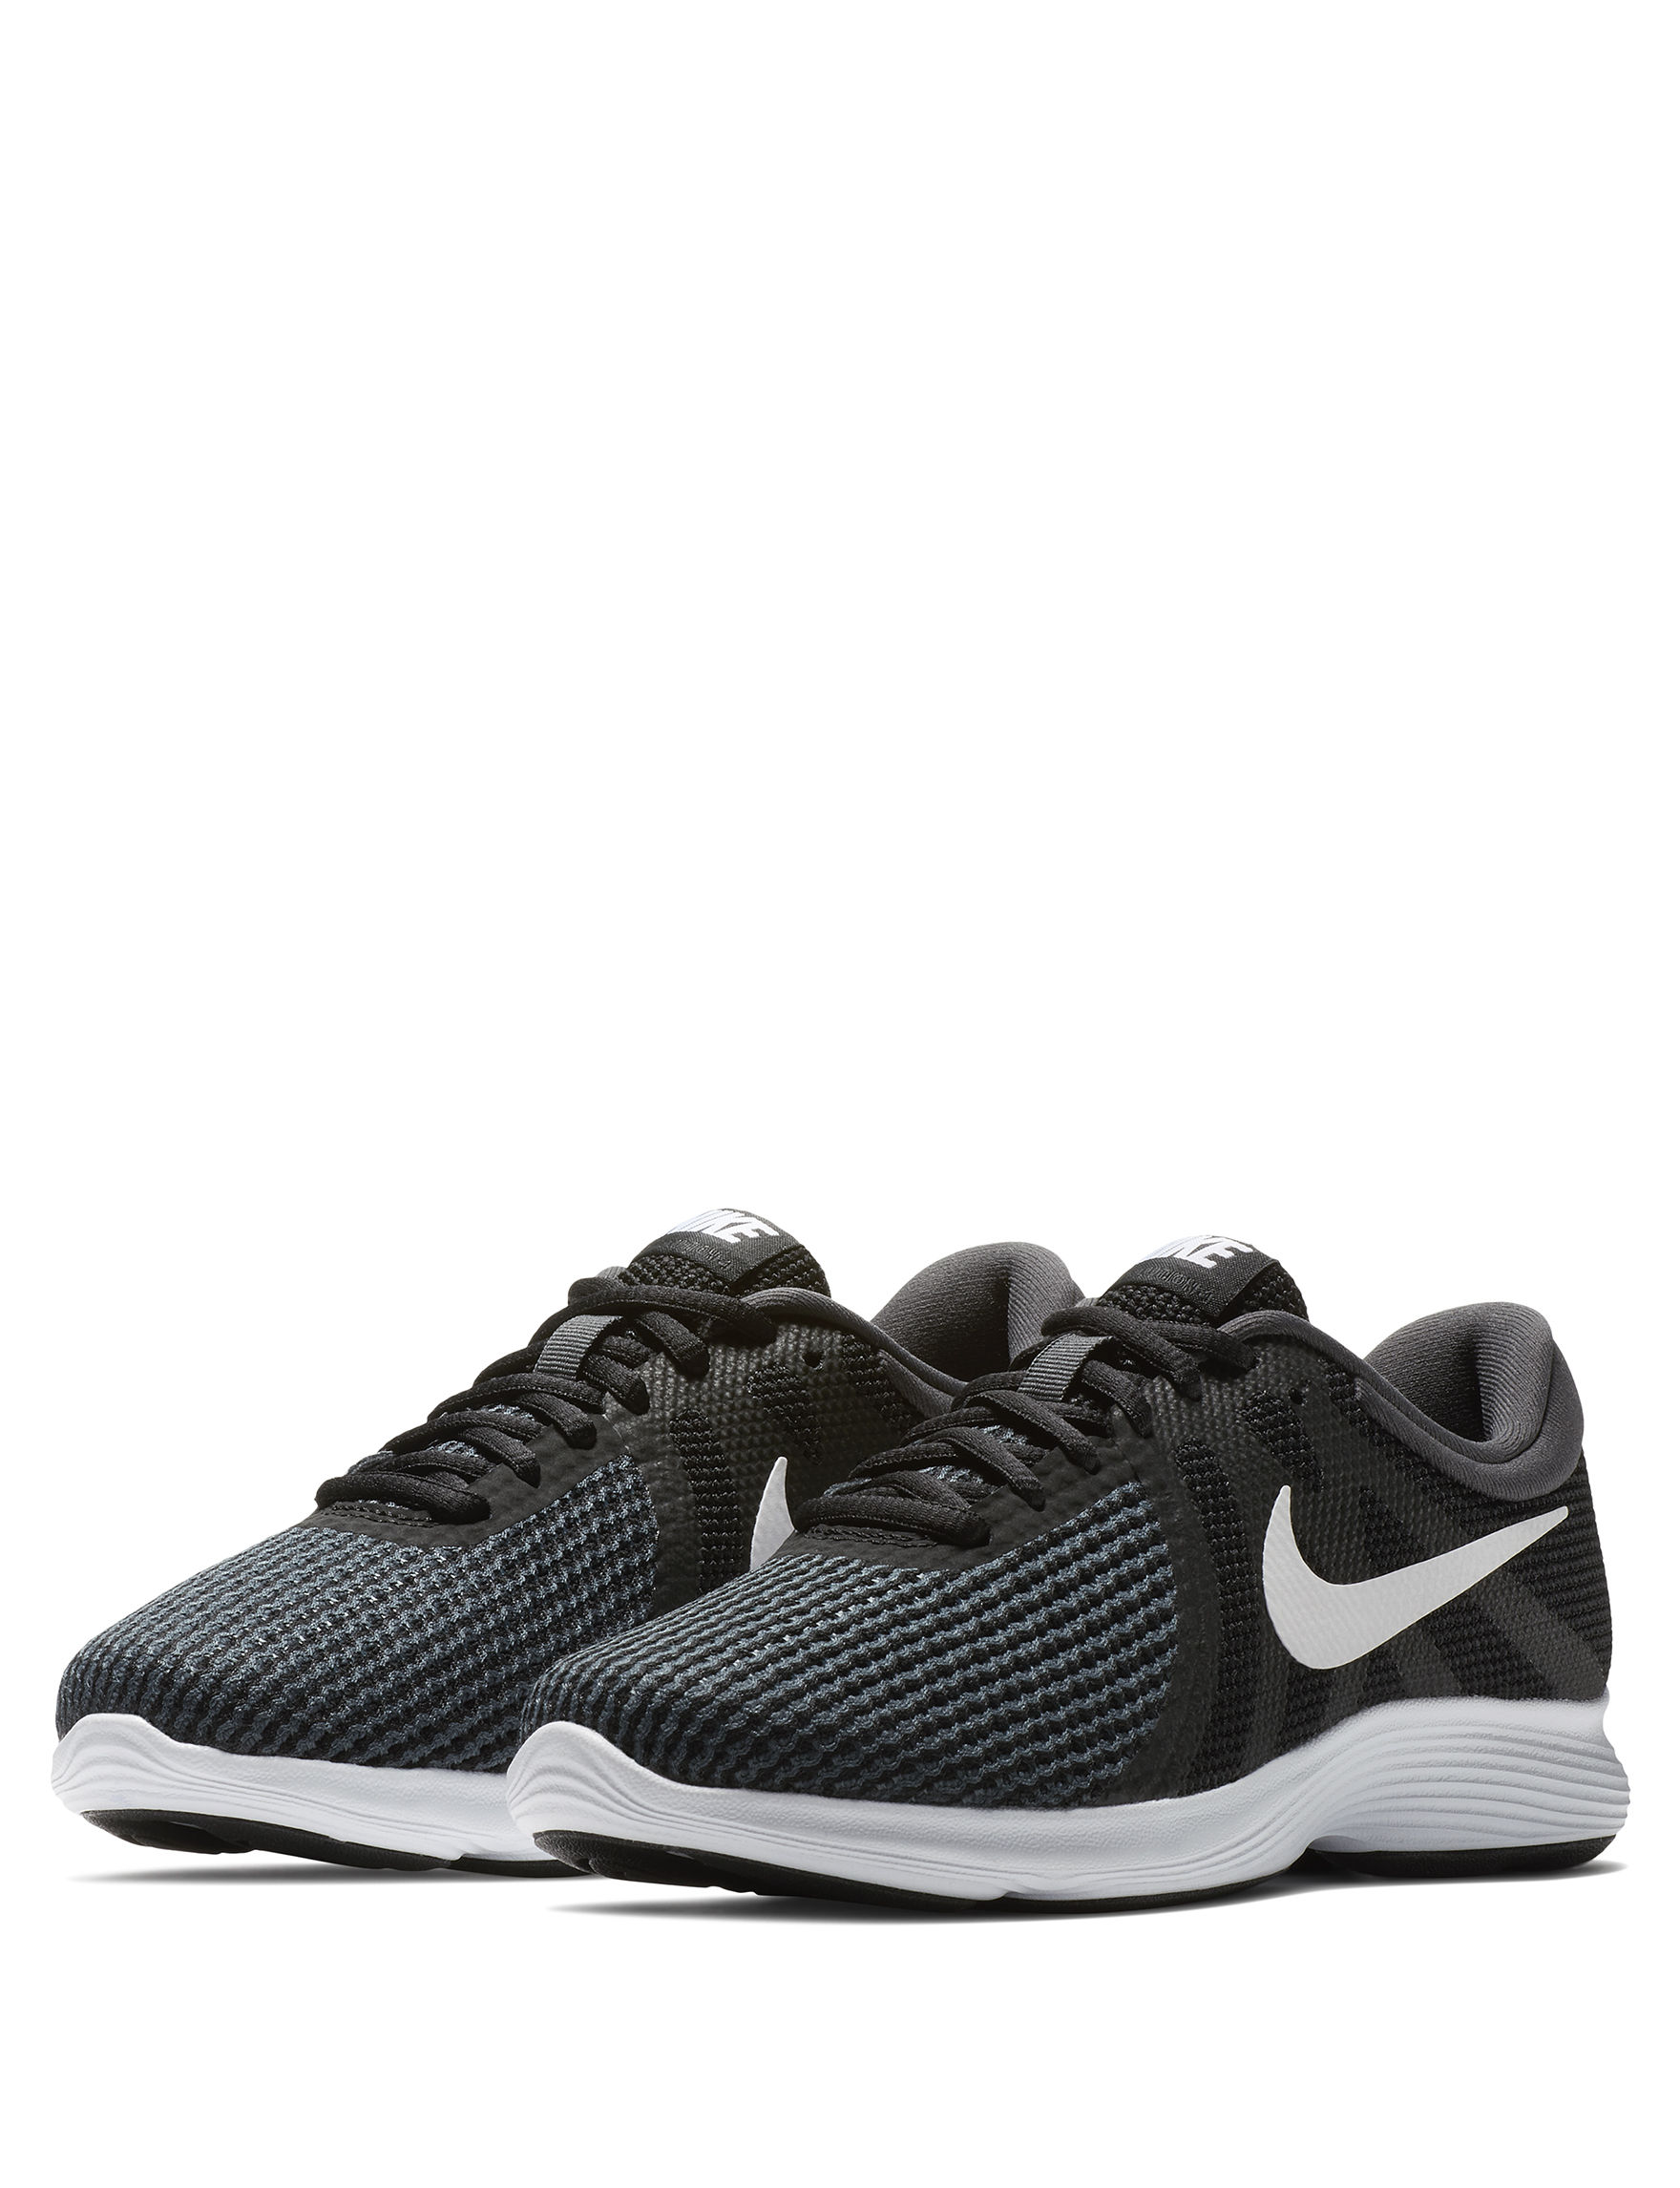 2bf30cf022ce Nike Women s Revolution 4 Wide Running Shoes